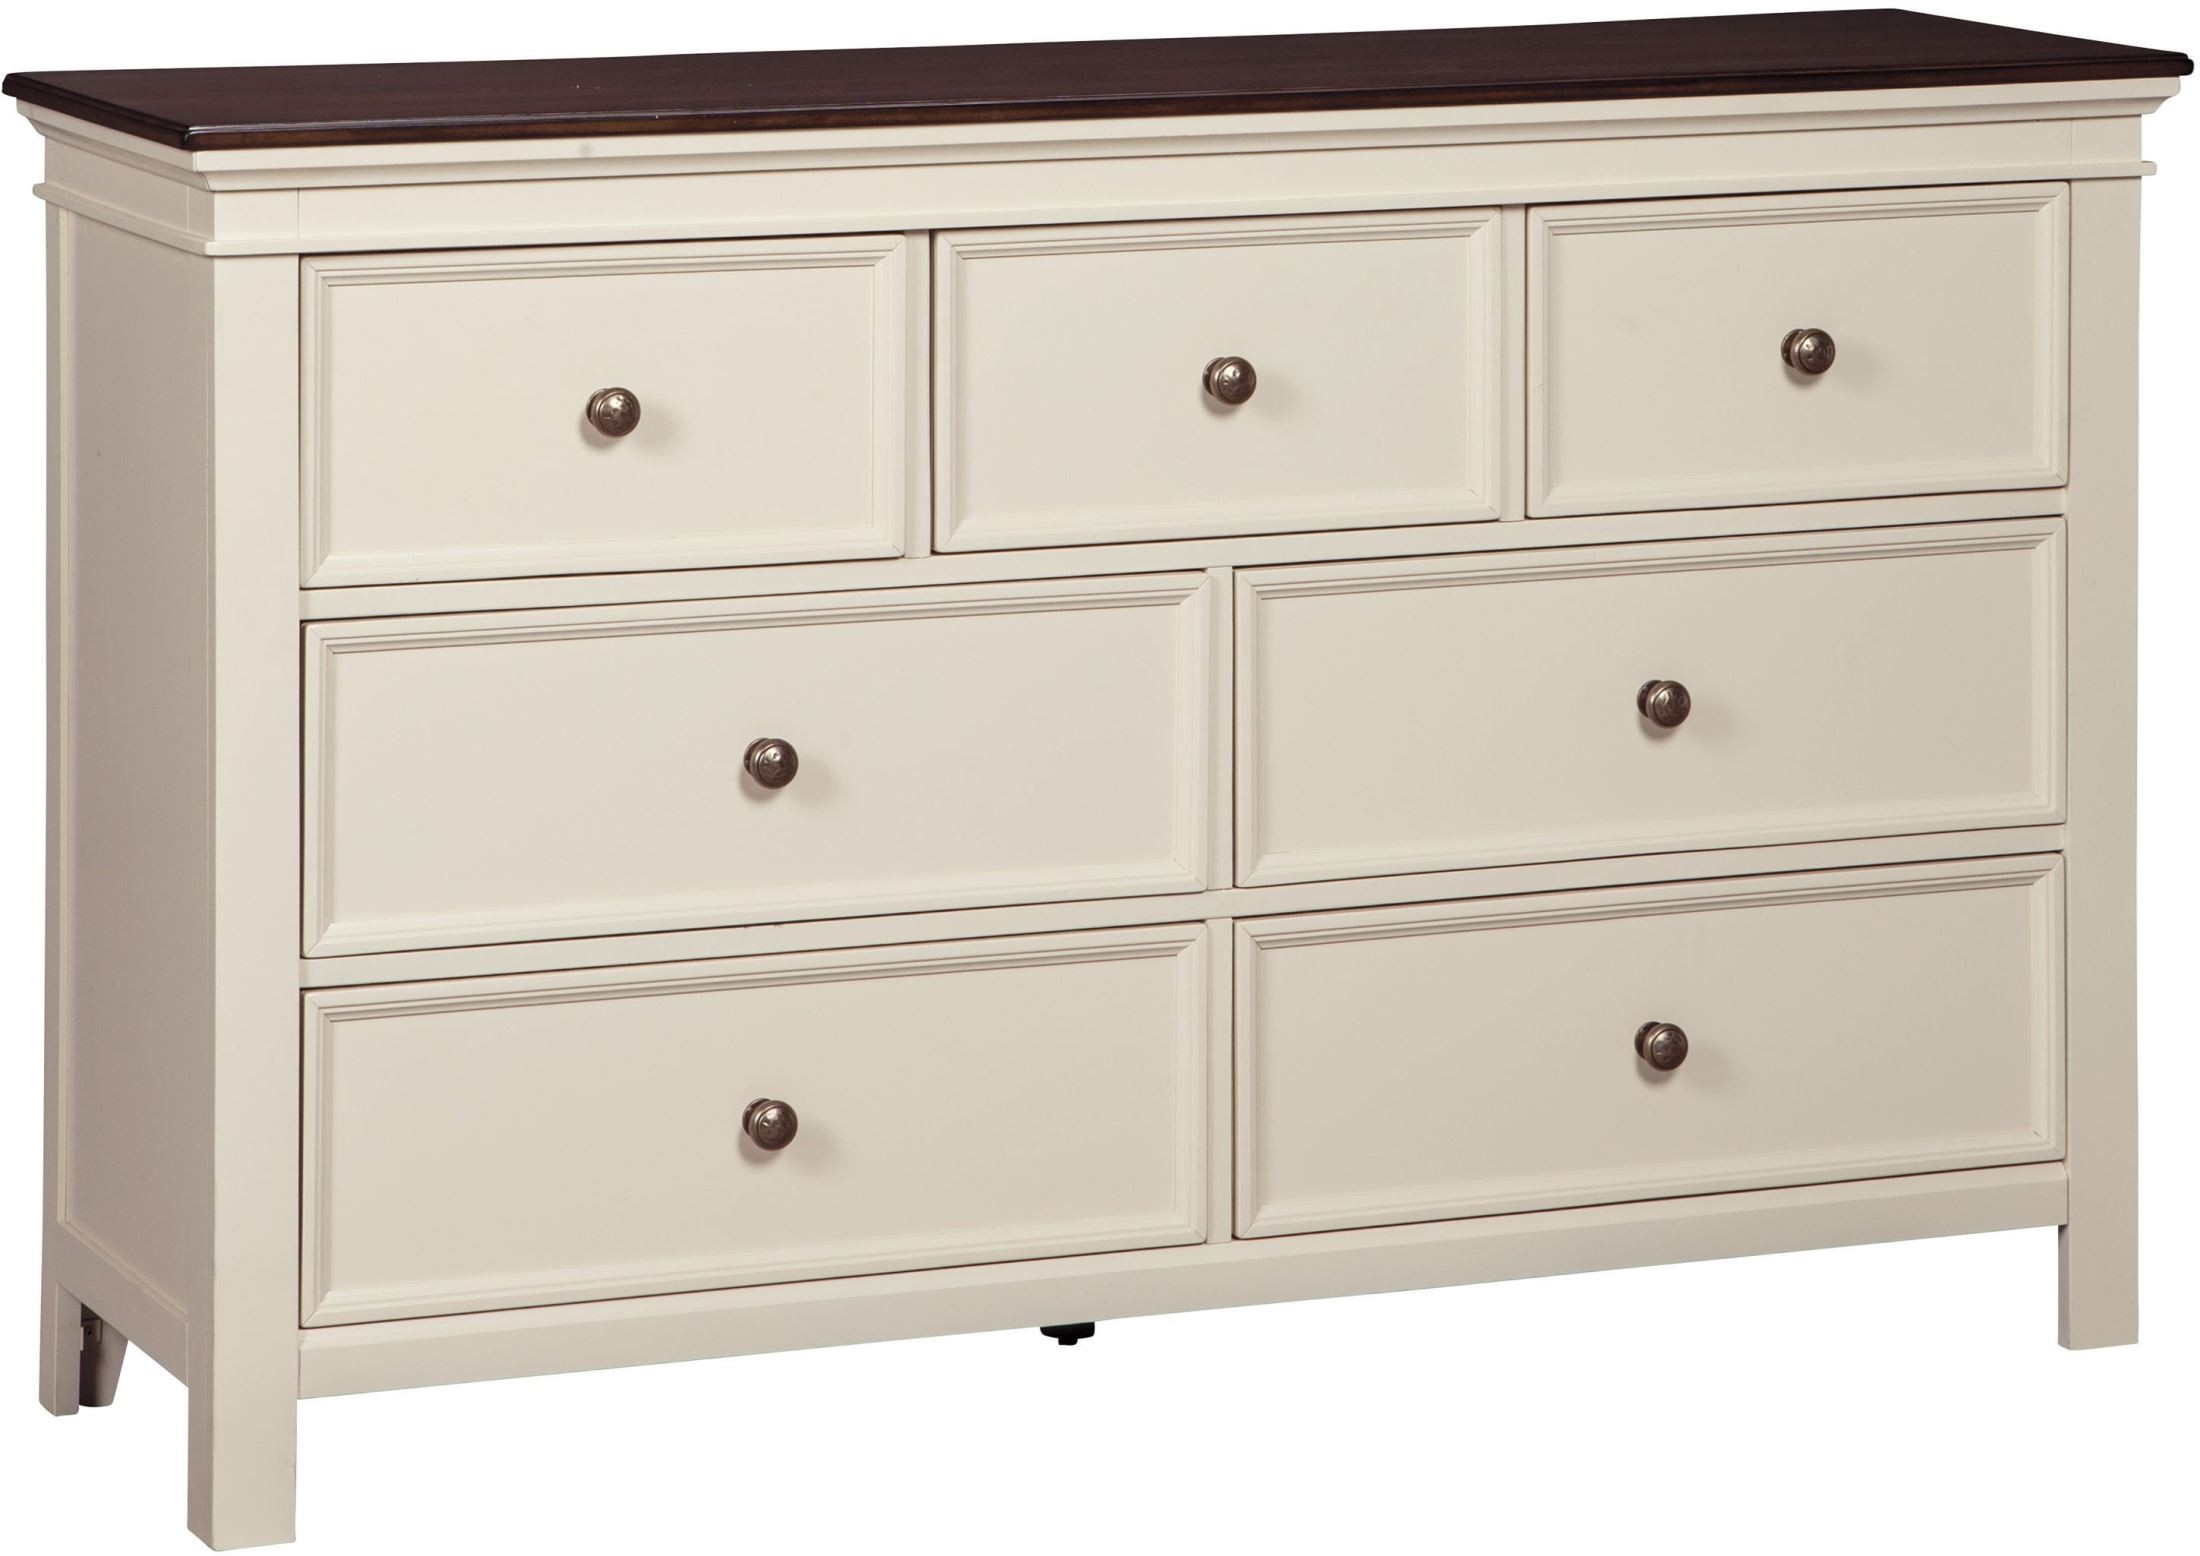 Bedroom Discount Furniture Woodanville White And Brown Dresser From Ashley Coleman